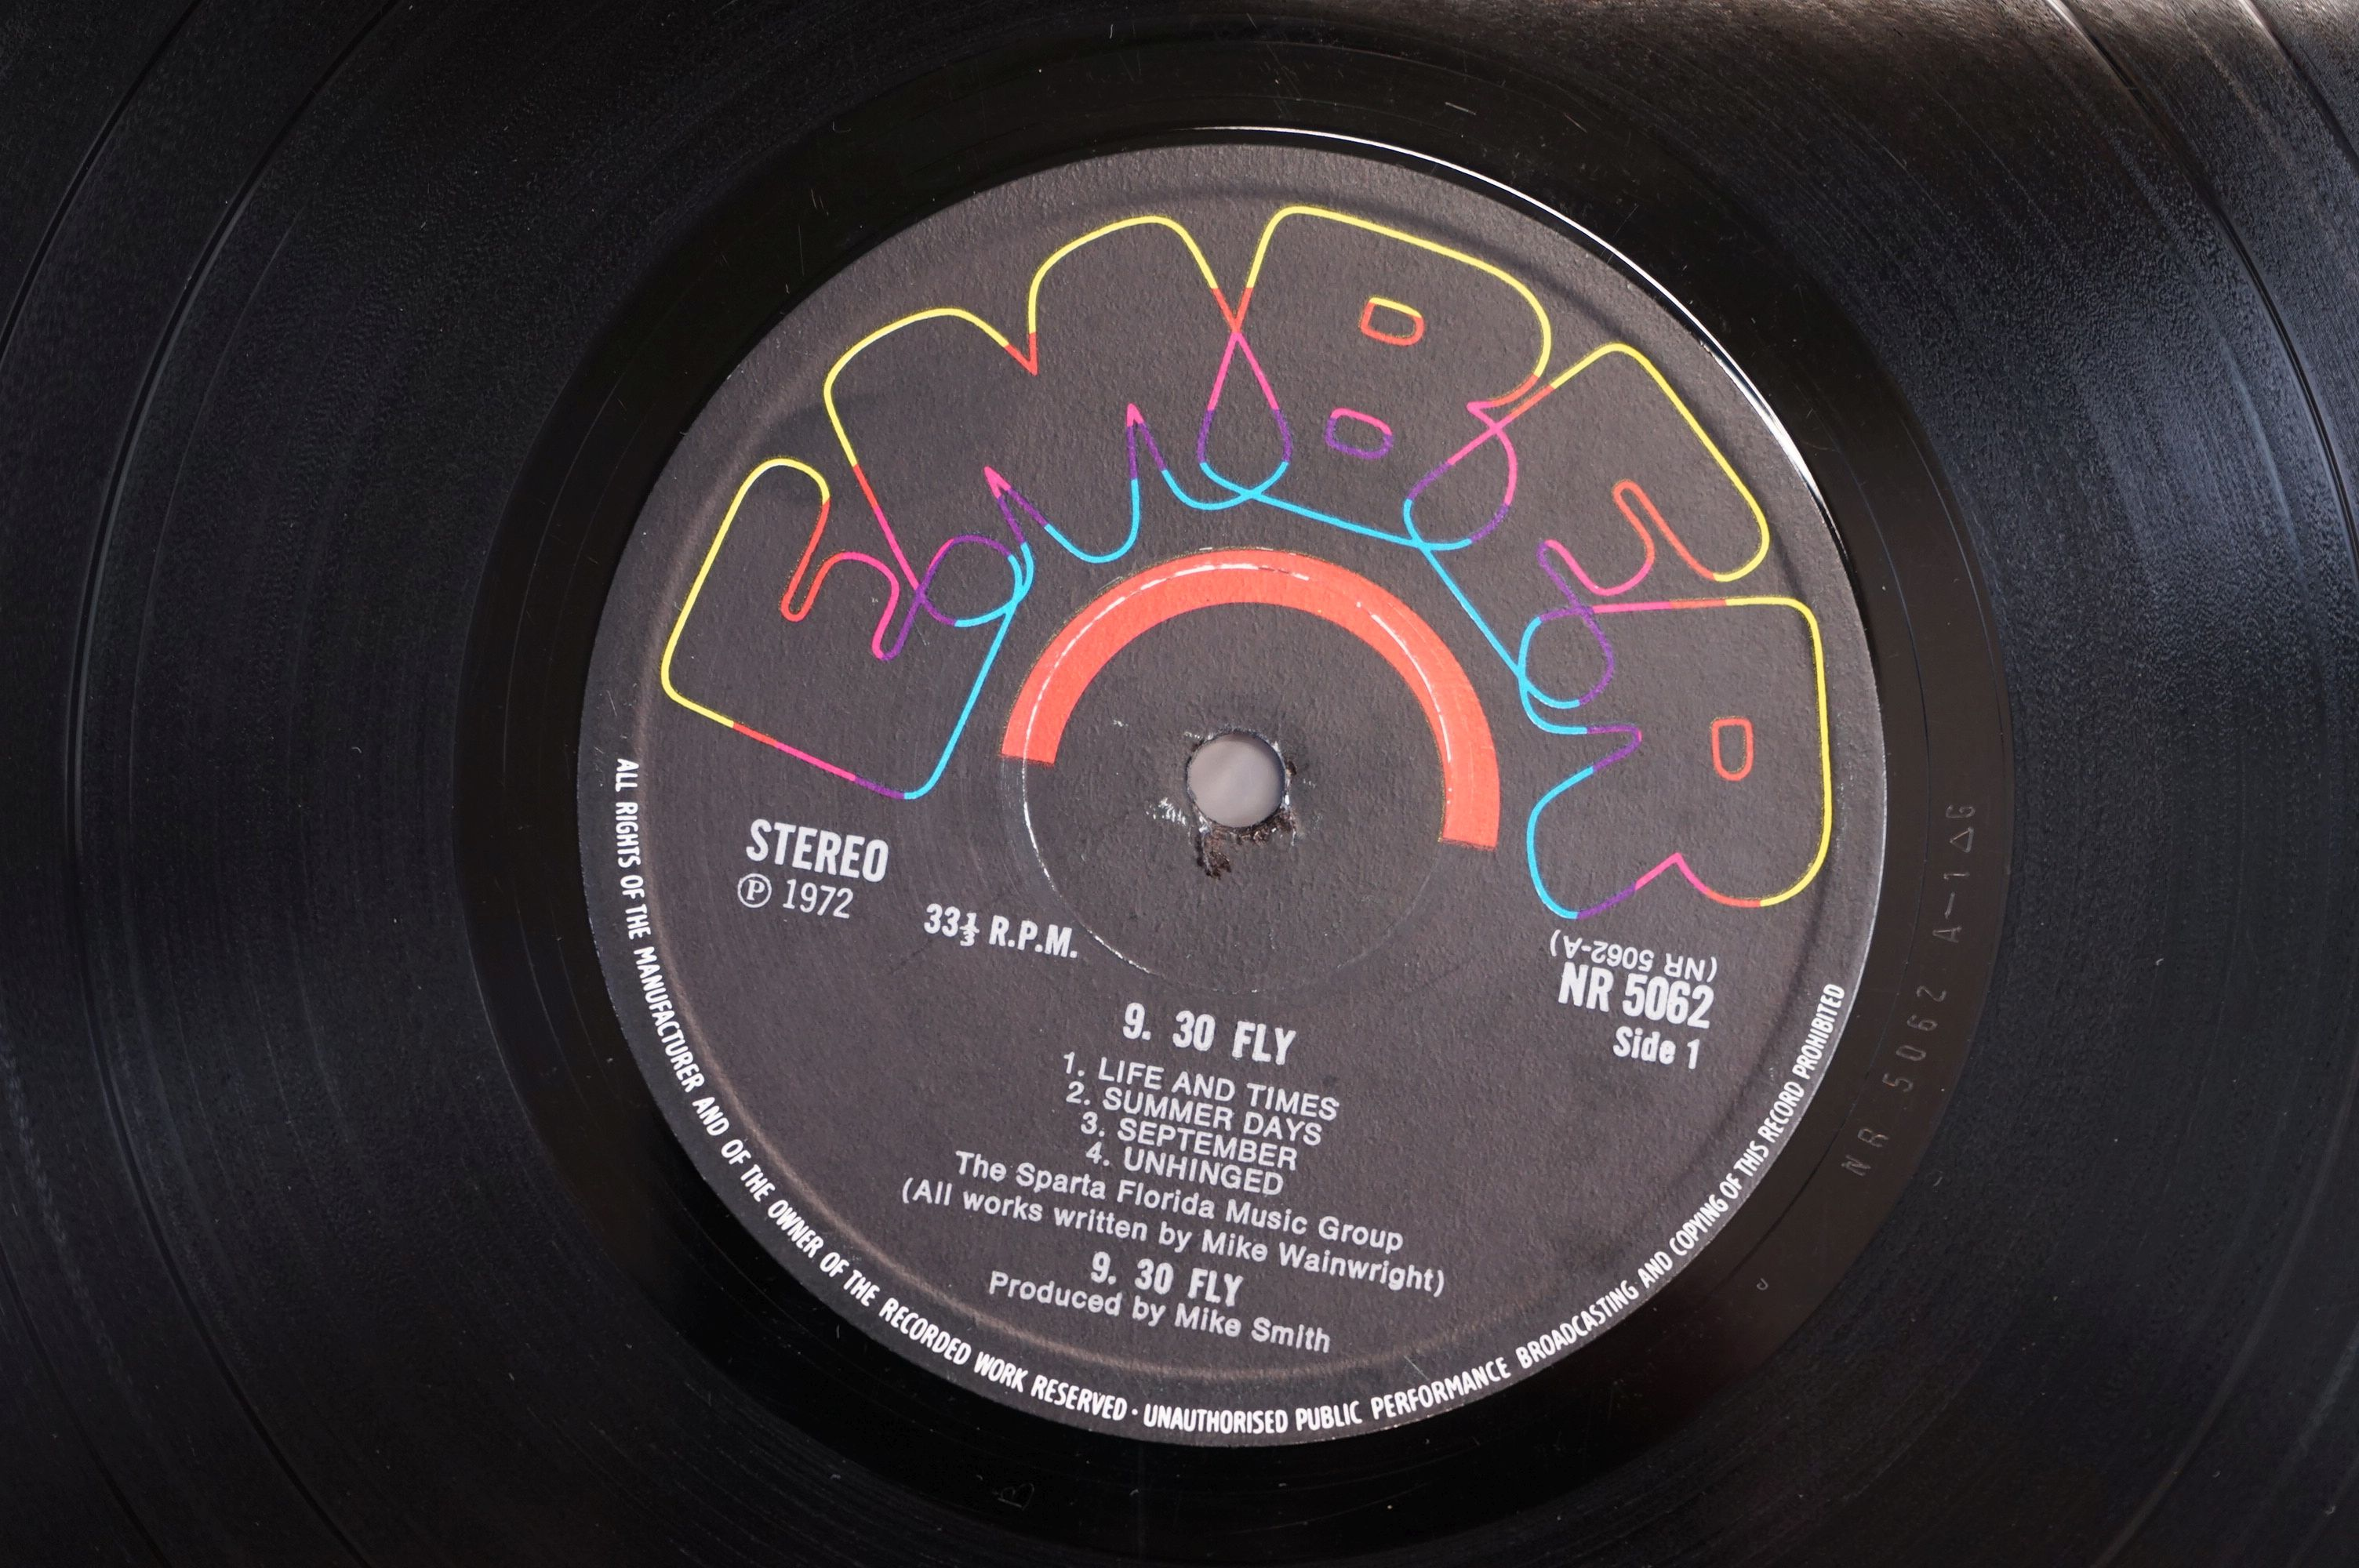 Vinyl - 9.30 Fly self titled LP on Ember NR5062 stereo, textured gatefold sleeve, writing to - Image 6 of 7